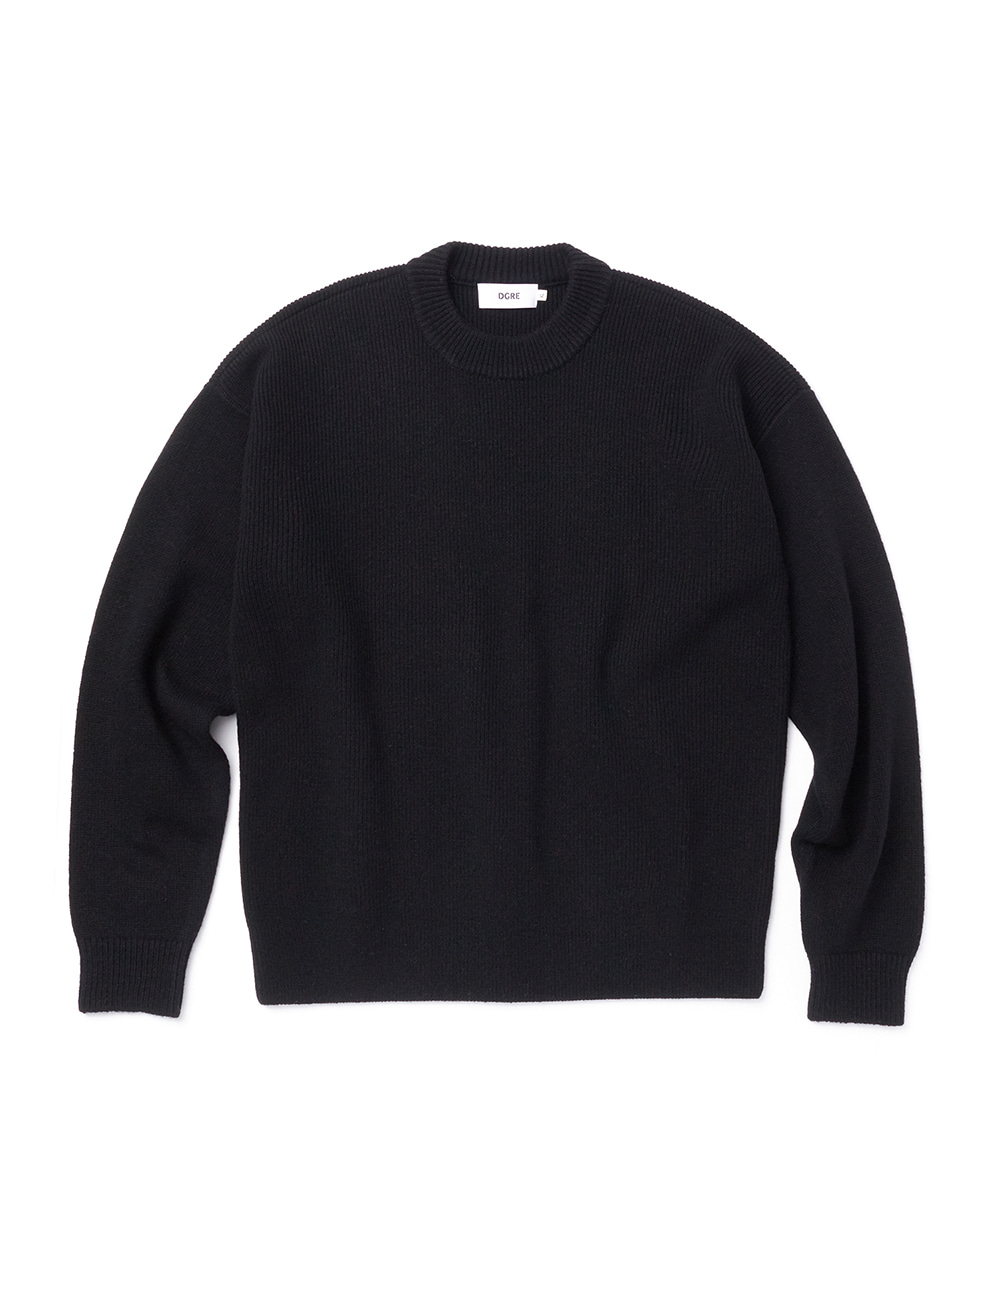 [DGRE] ANGEL WOOL RIB CREW KNIT (BLACK)